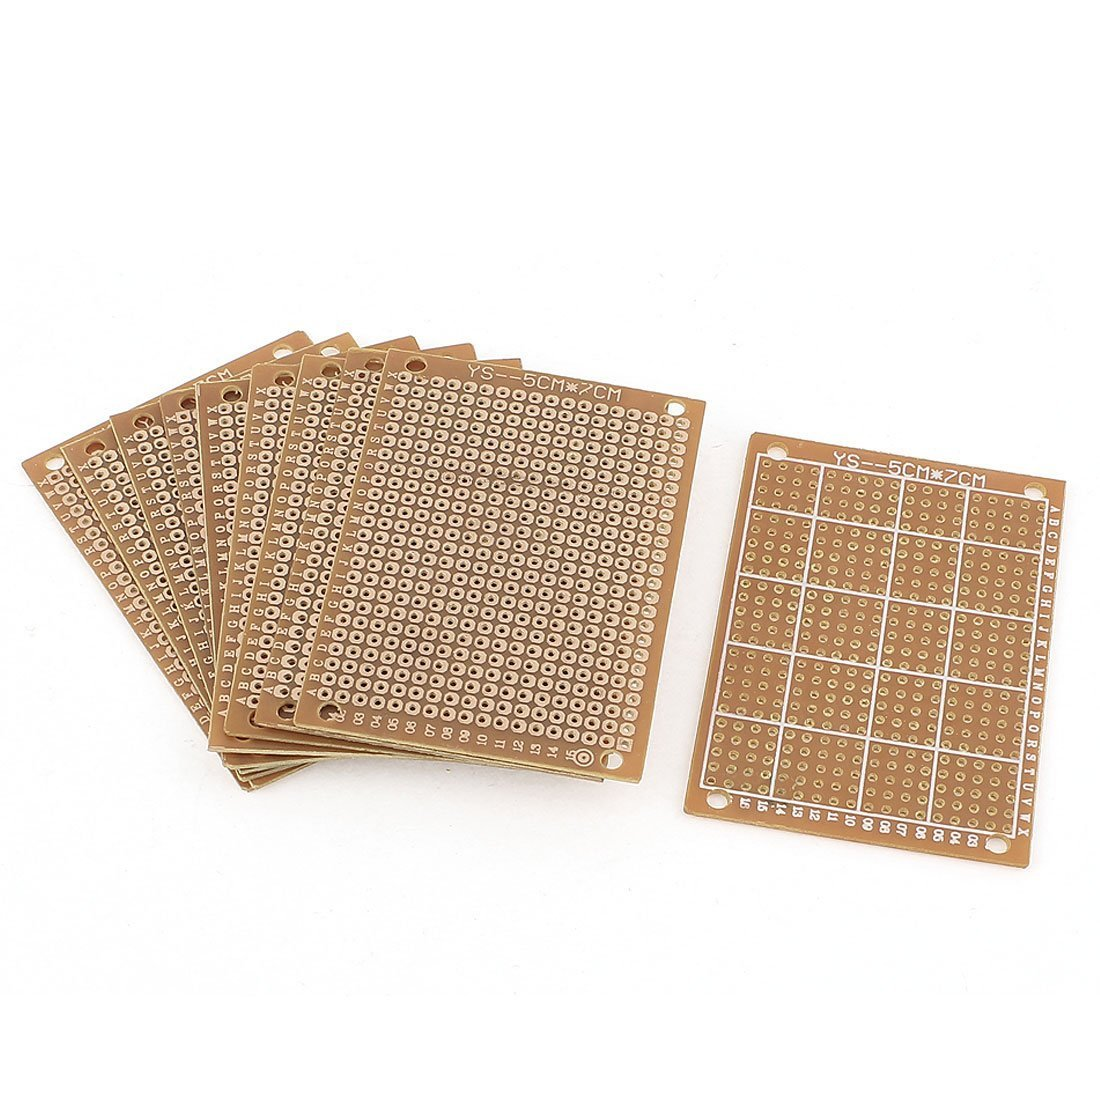 Uxcell a15050500ux0130 10 Piece Single-sided PCB Printed Circuit Board Prototype Breadboard 7cm x 5cm